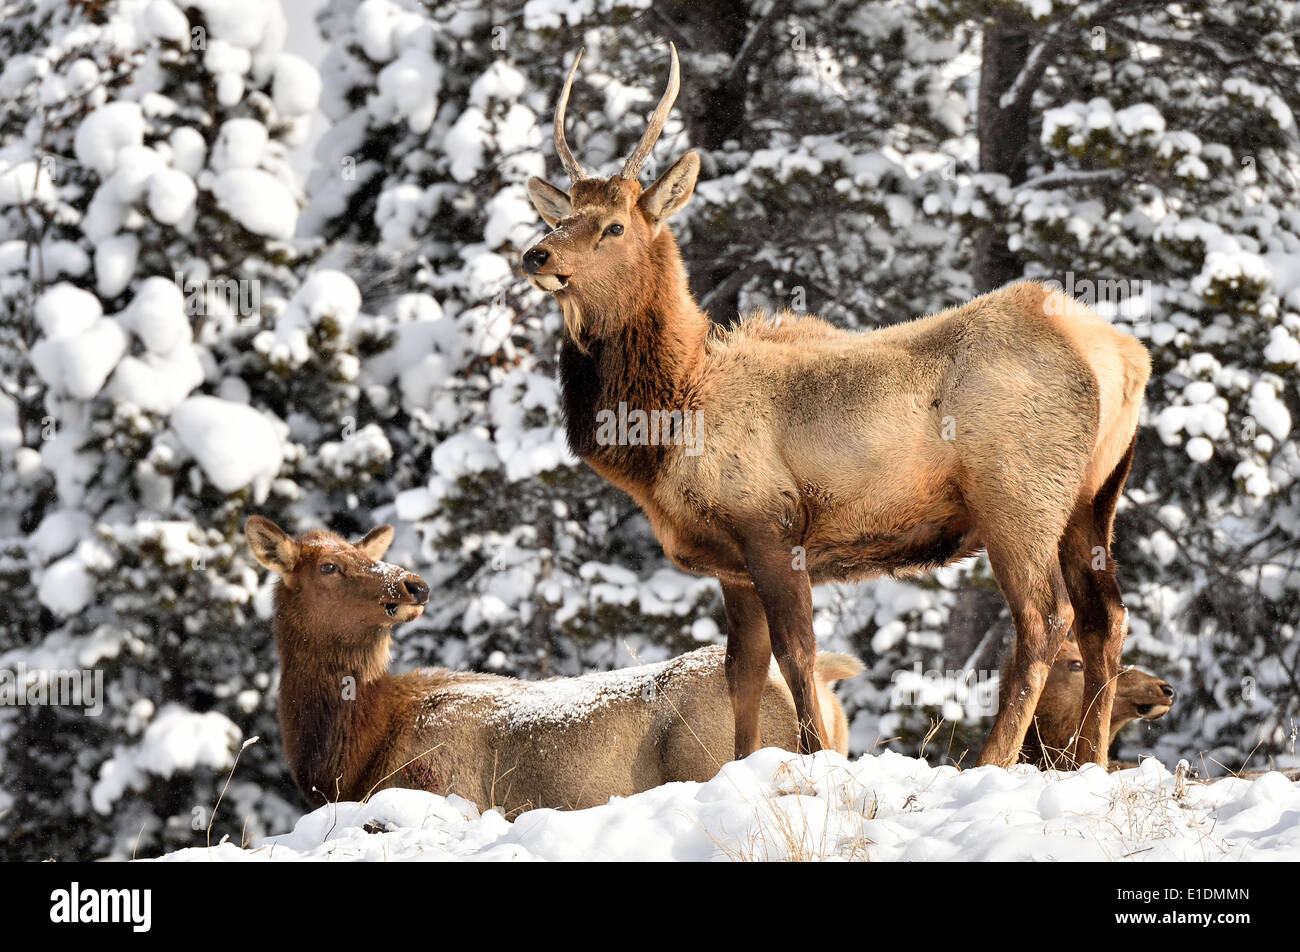 A young bull elk standing being alert as his herd moves along - Stock Image